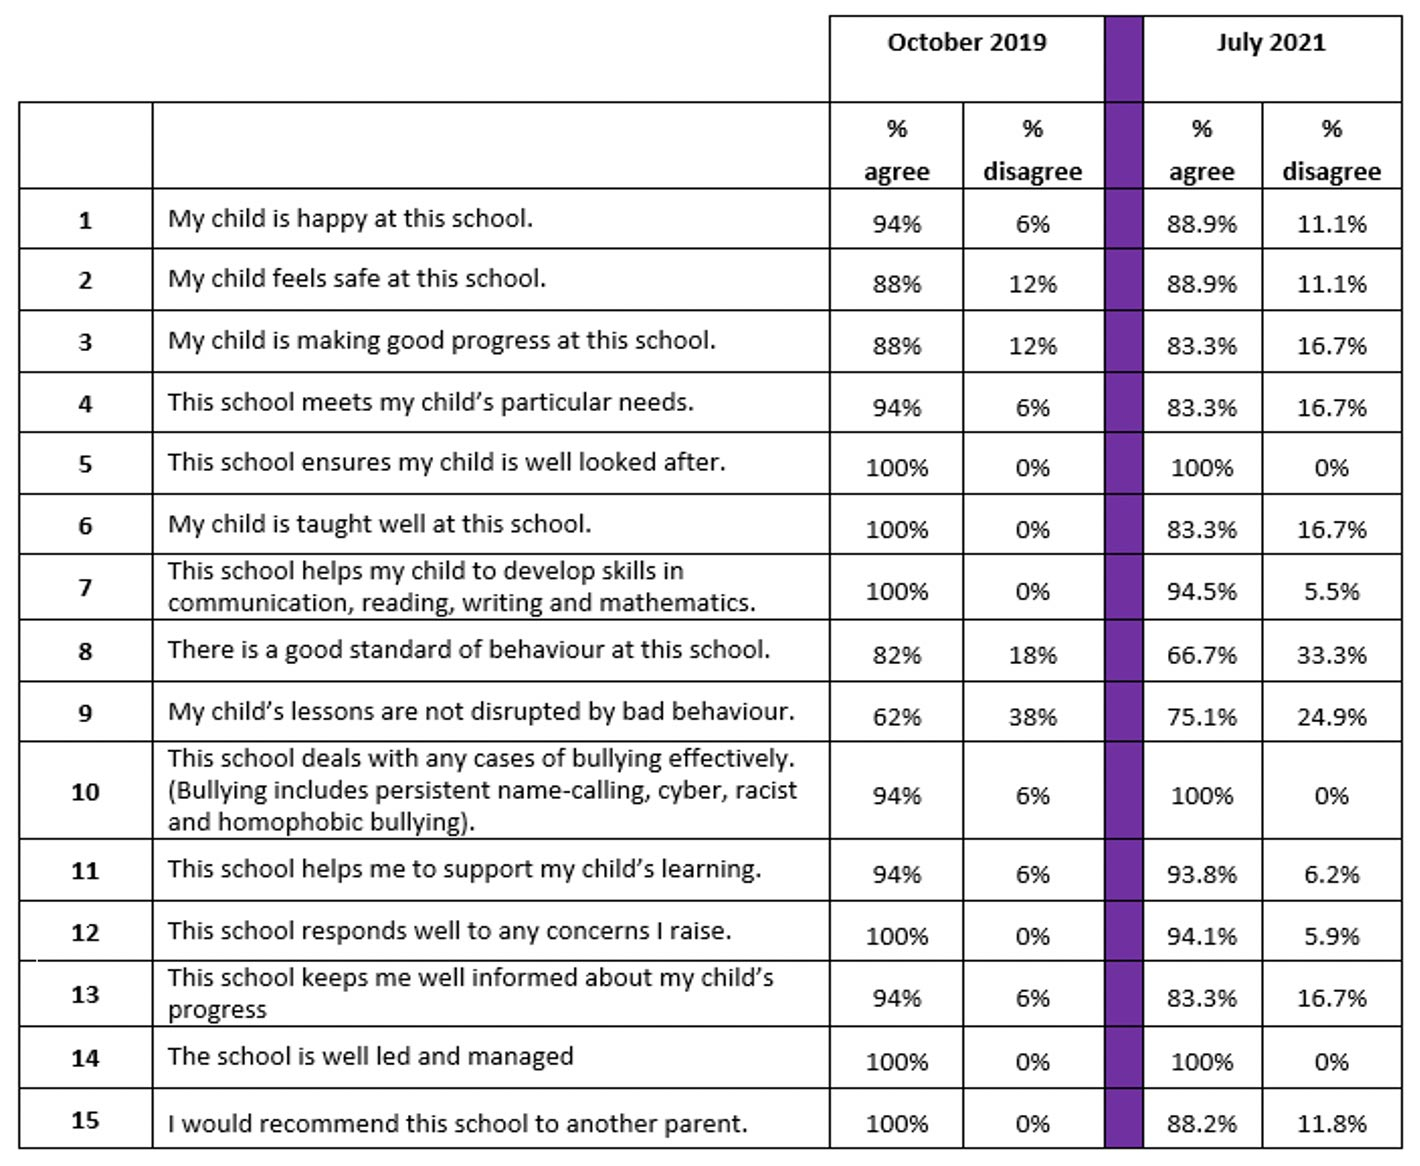 Table of 12 questions around pupils experience of the school, behaviour, support of teachers progress, wellbeing and day to day issues and concerns, questions had general agreement with some pupils giving negative and don't know responses